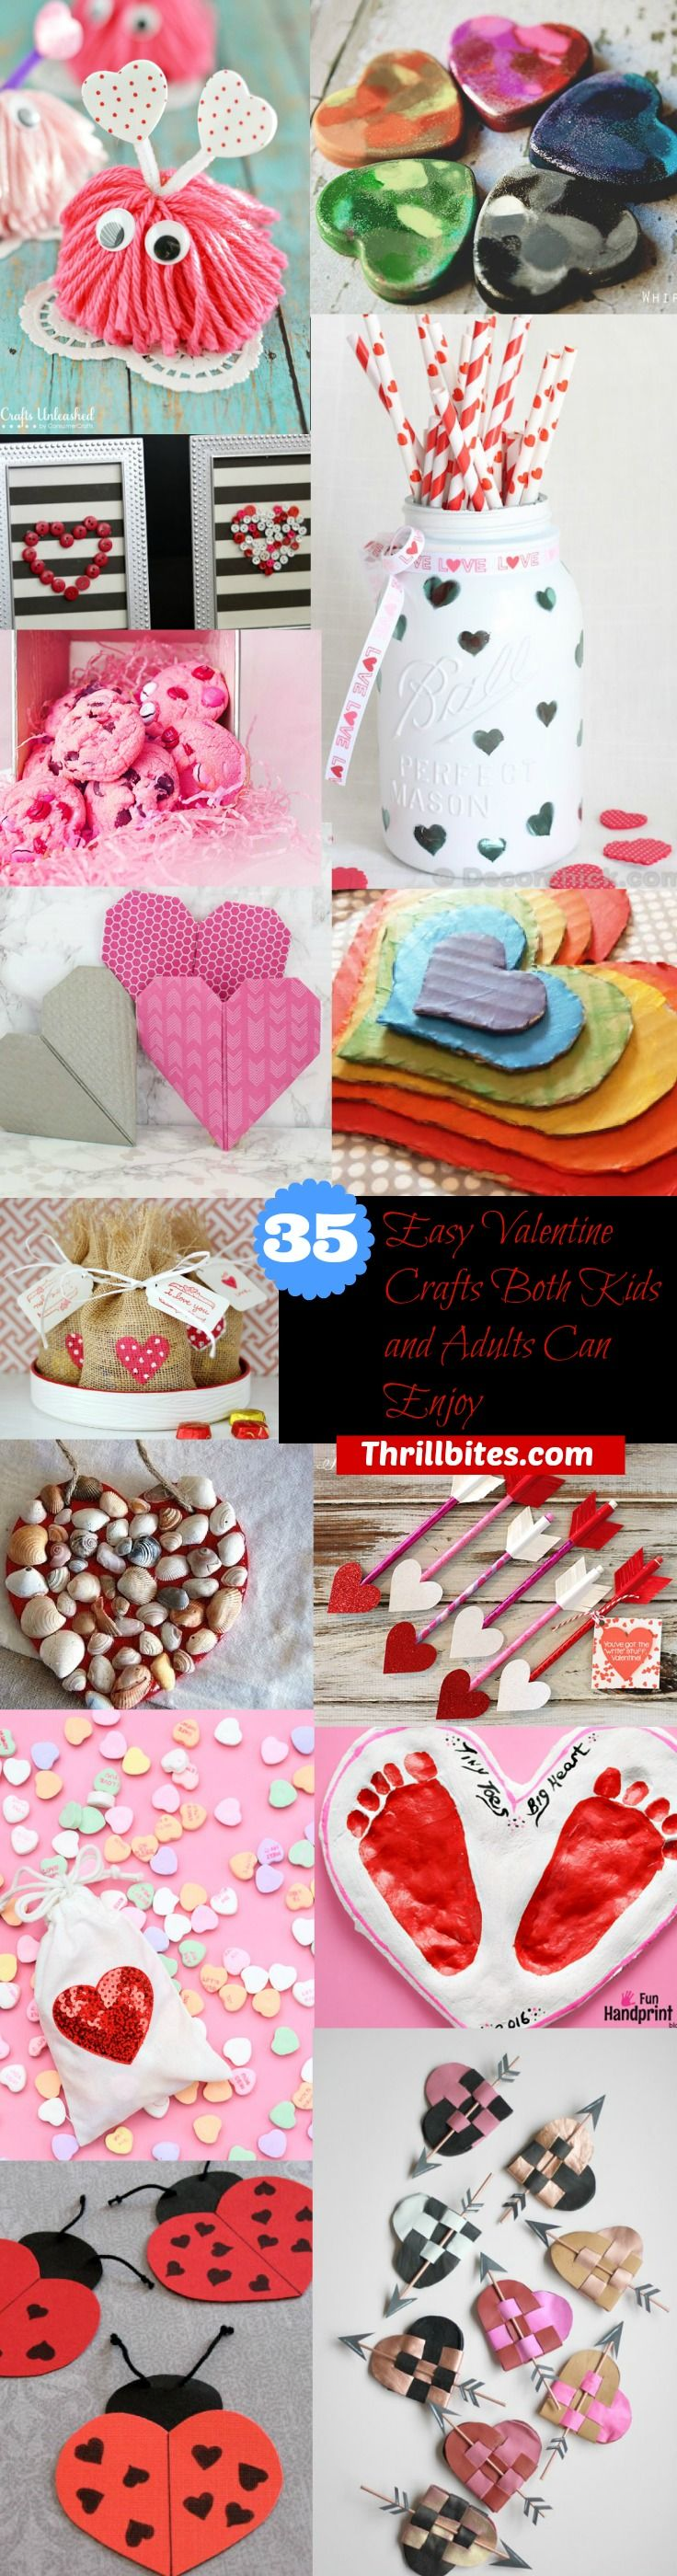 35 Easy Valentine Crafts Both Kids and Adults Can Enjoy | Valentine Crafts | Valentine Craft Ideas